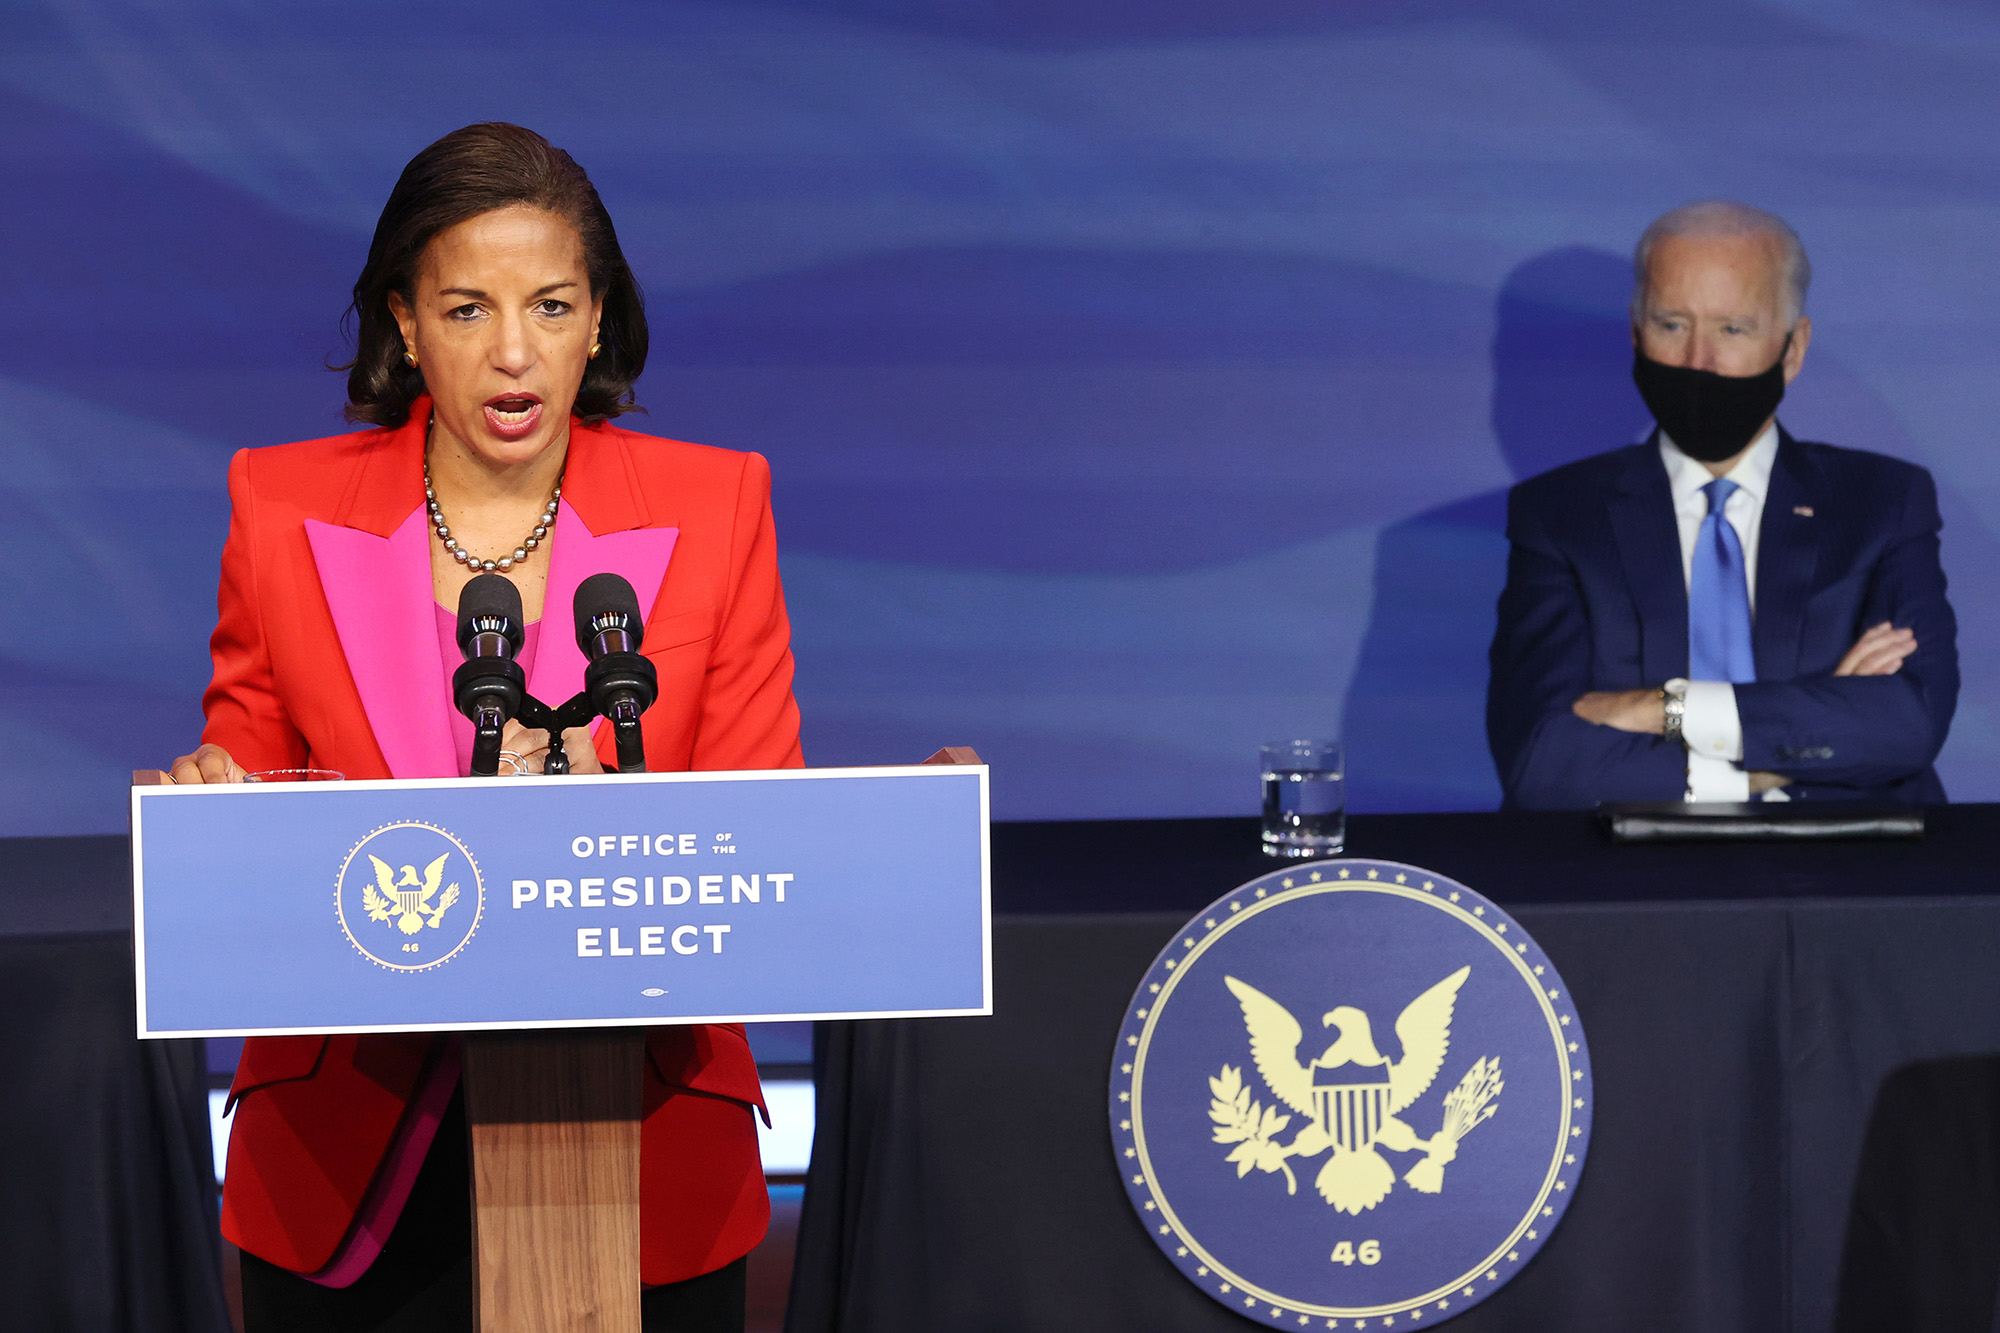 Susan Rice speaking at a podium with Joe Biden in the background